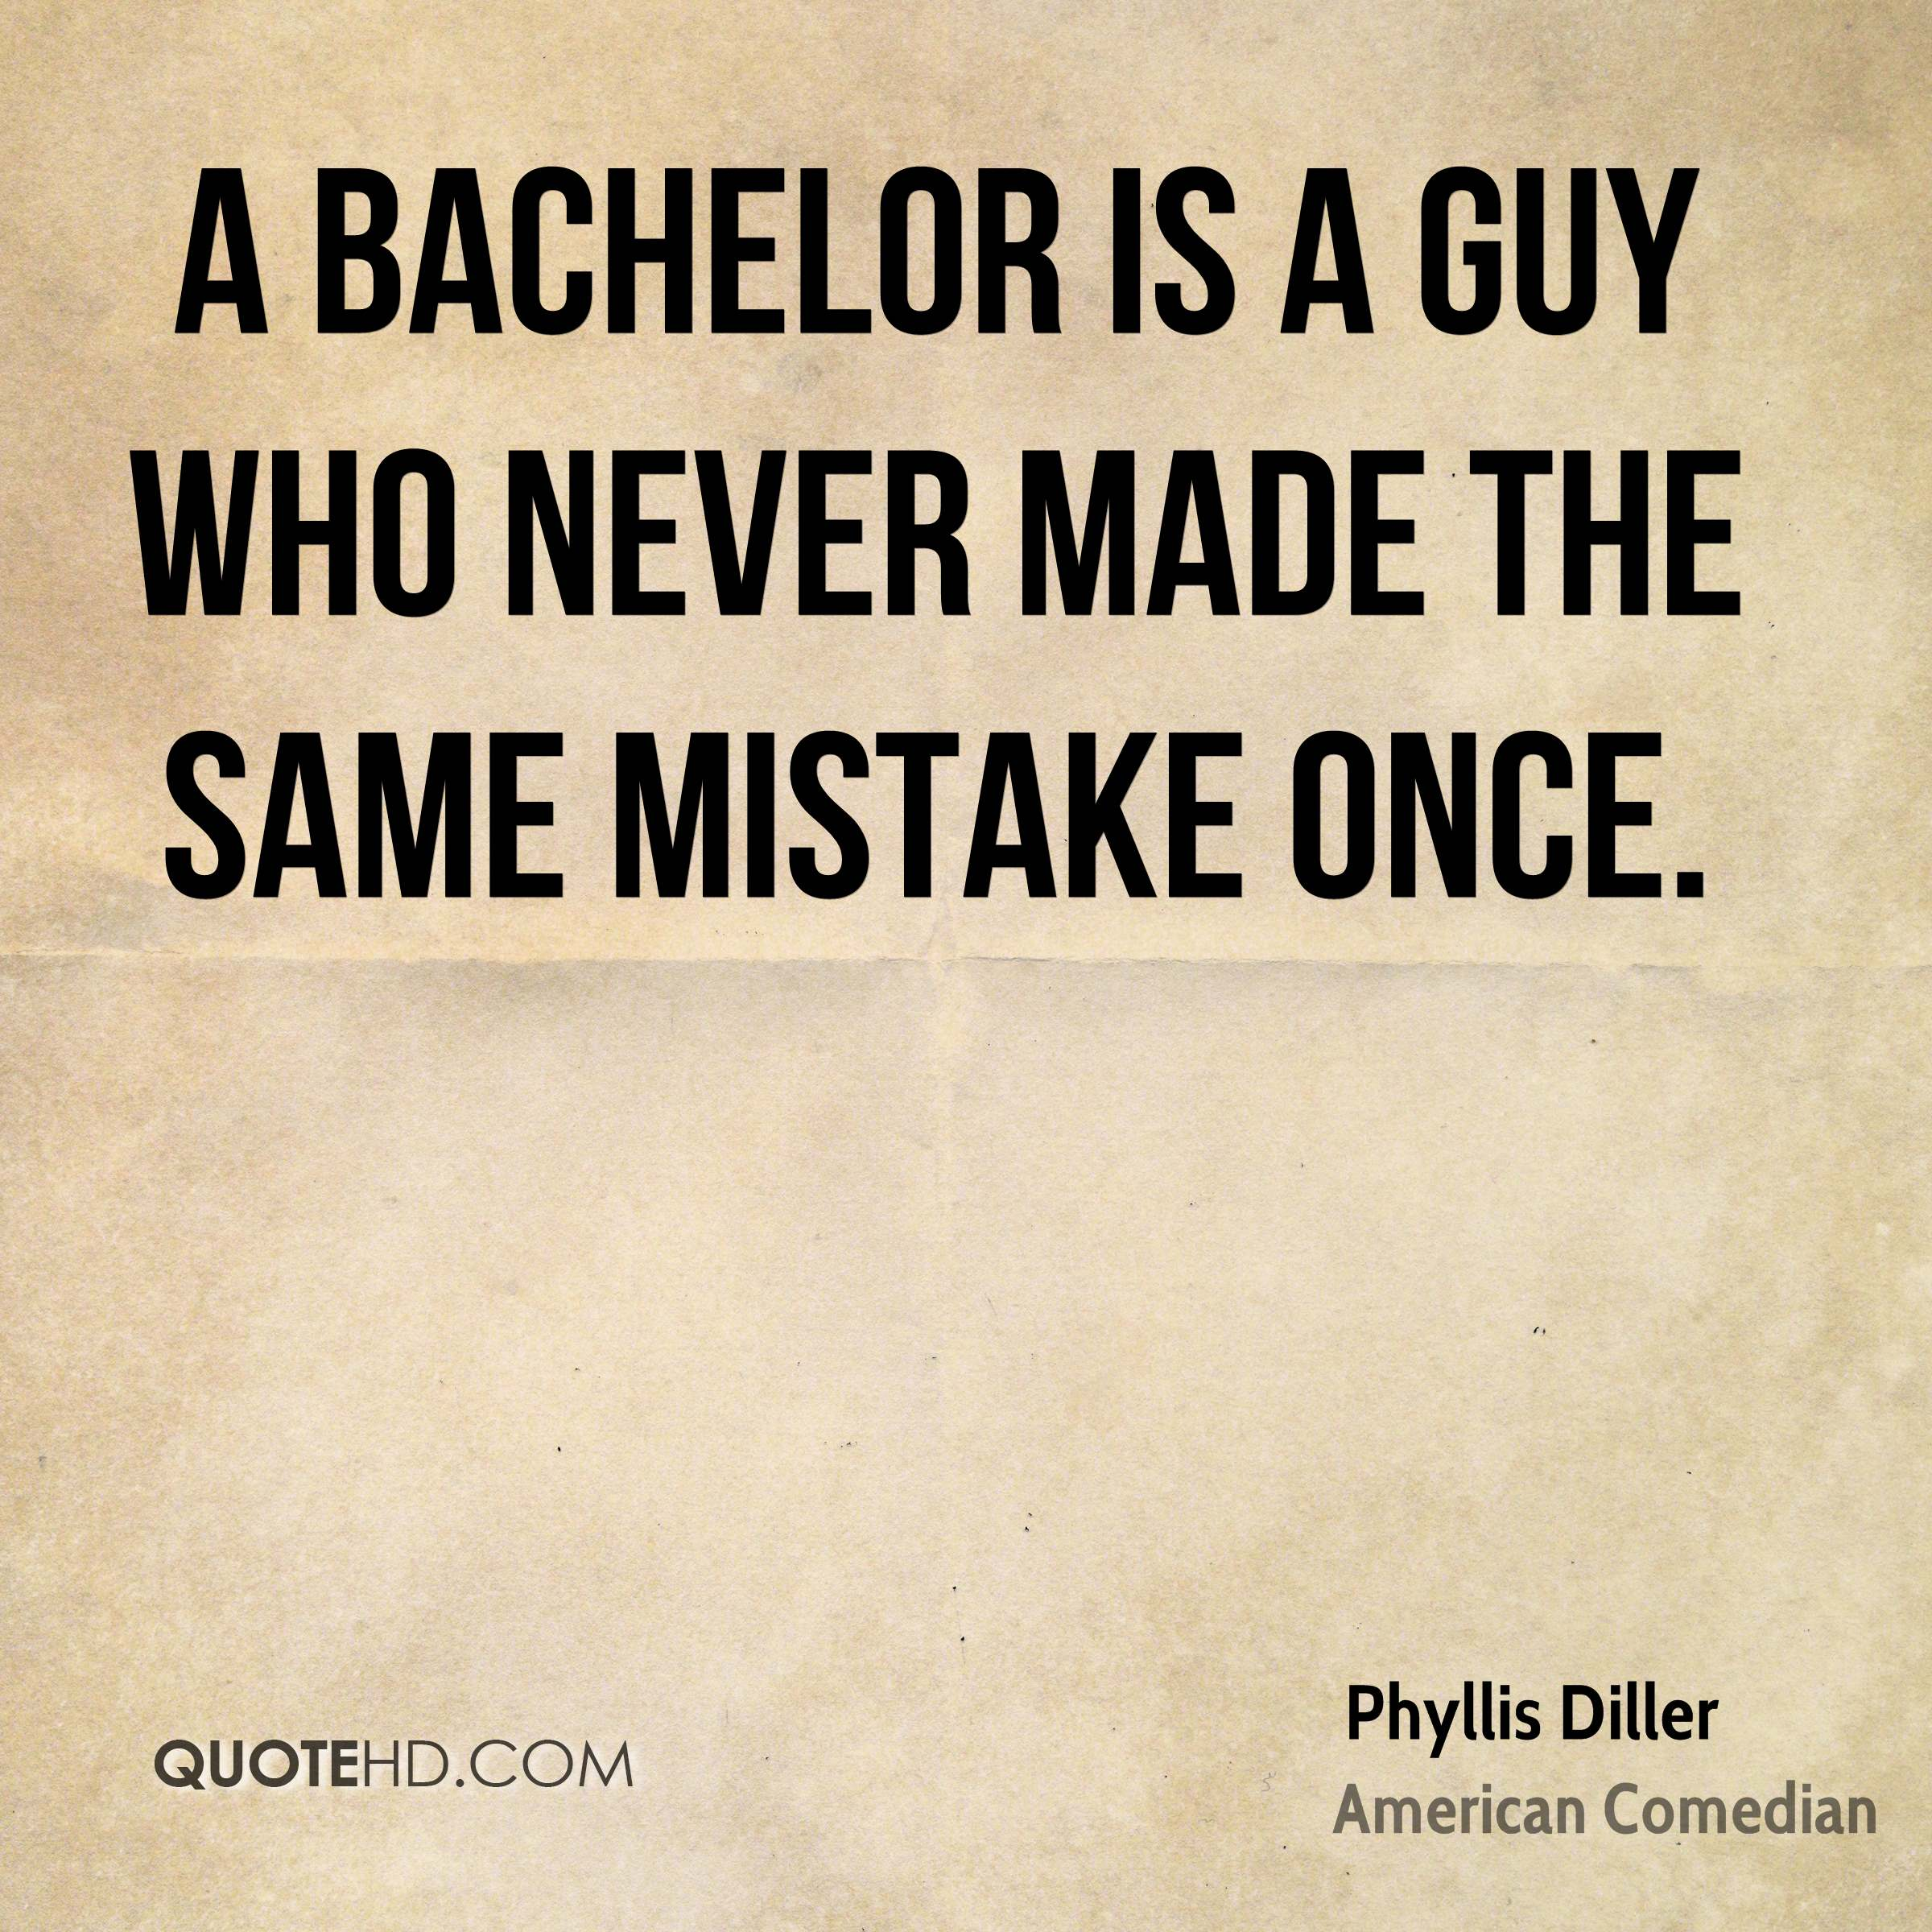 A bachelor is a guy who never made the same mistake once.